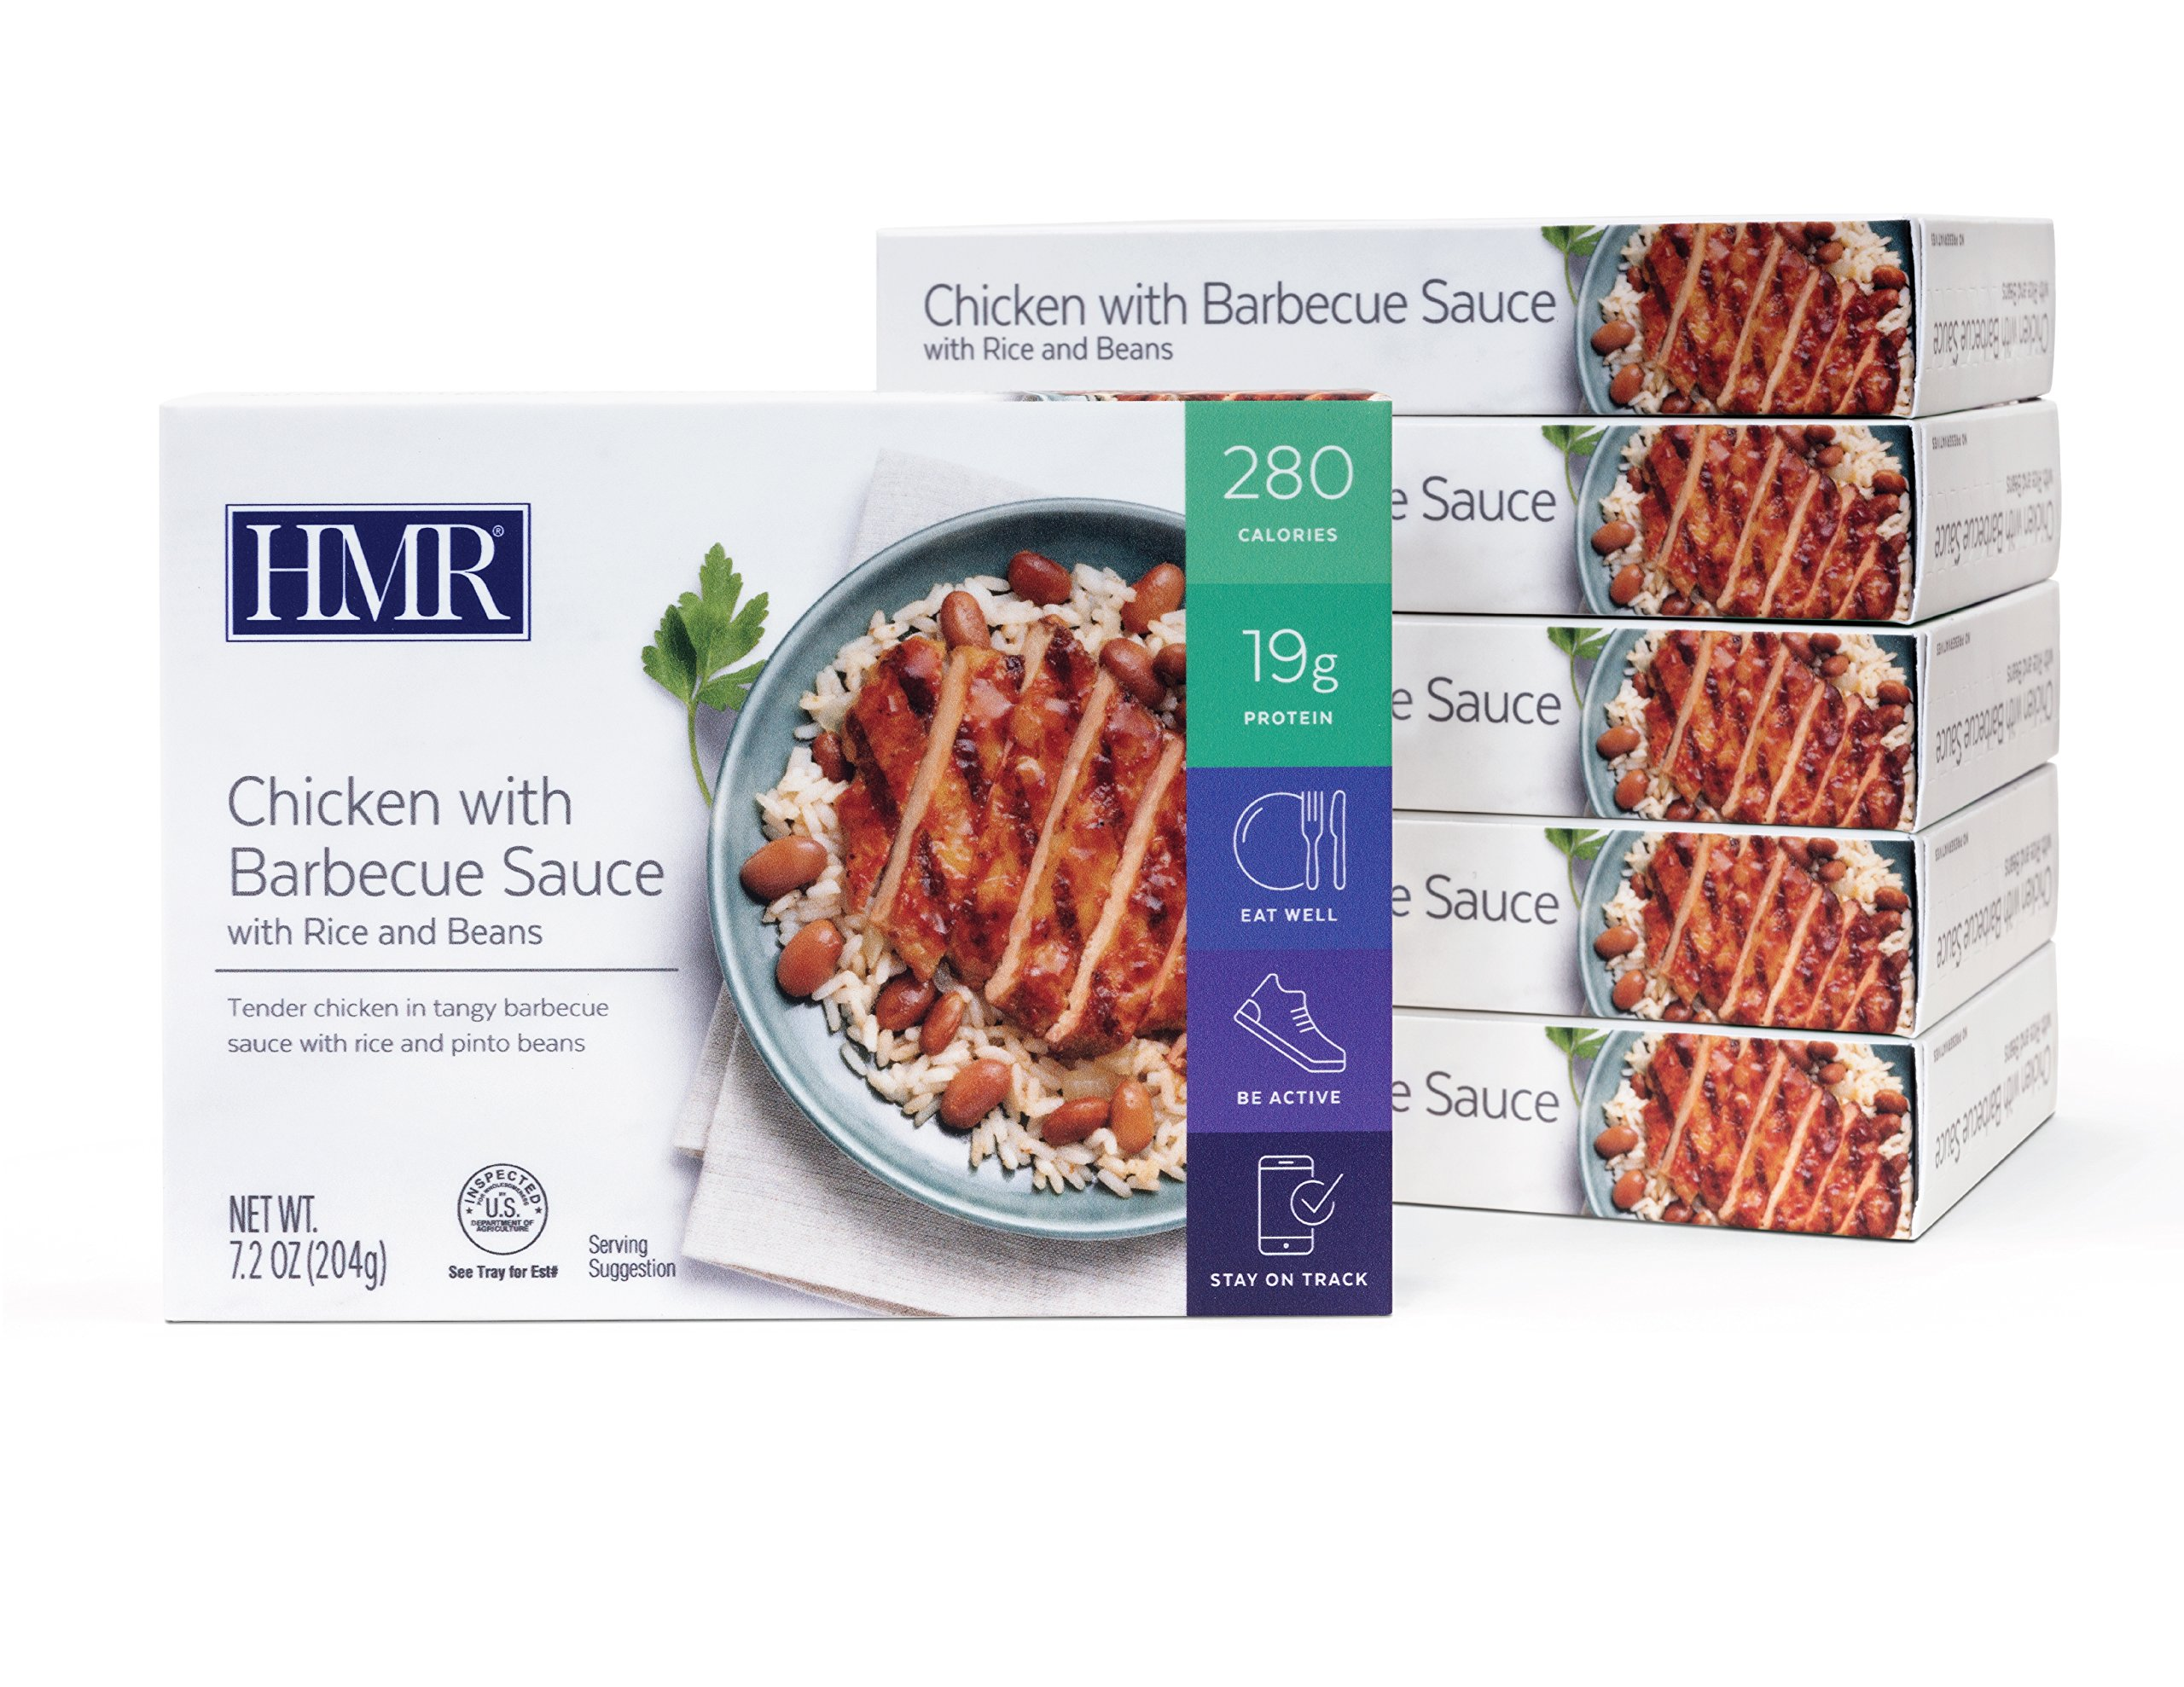 HMR Chicken with Barbecue Sauce with Rice and Beans Entree, 7.2 oz. Servings, 6 Count by HMR